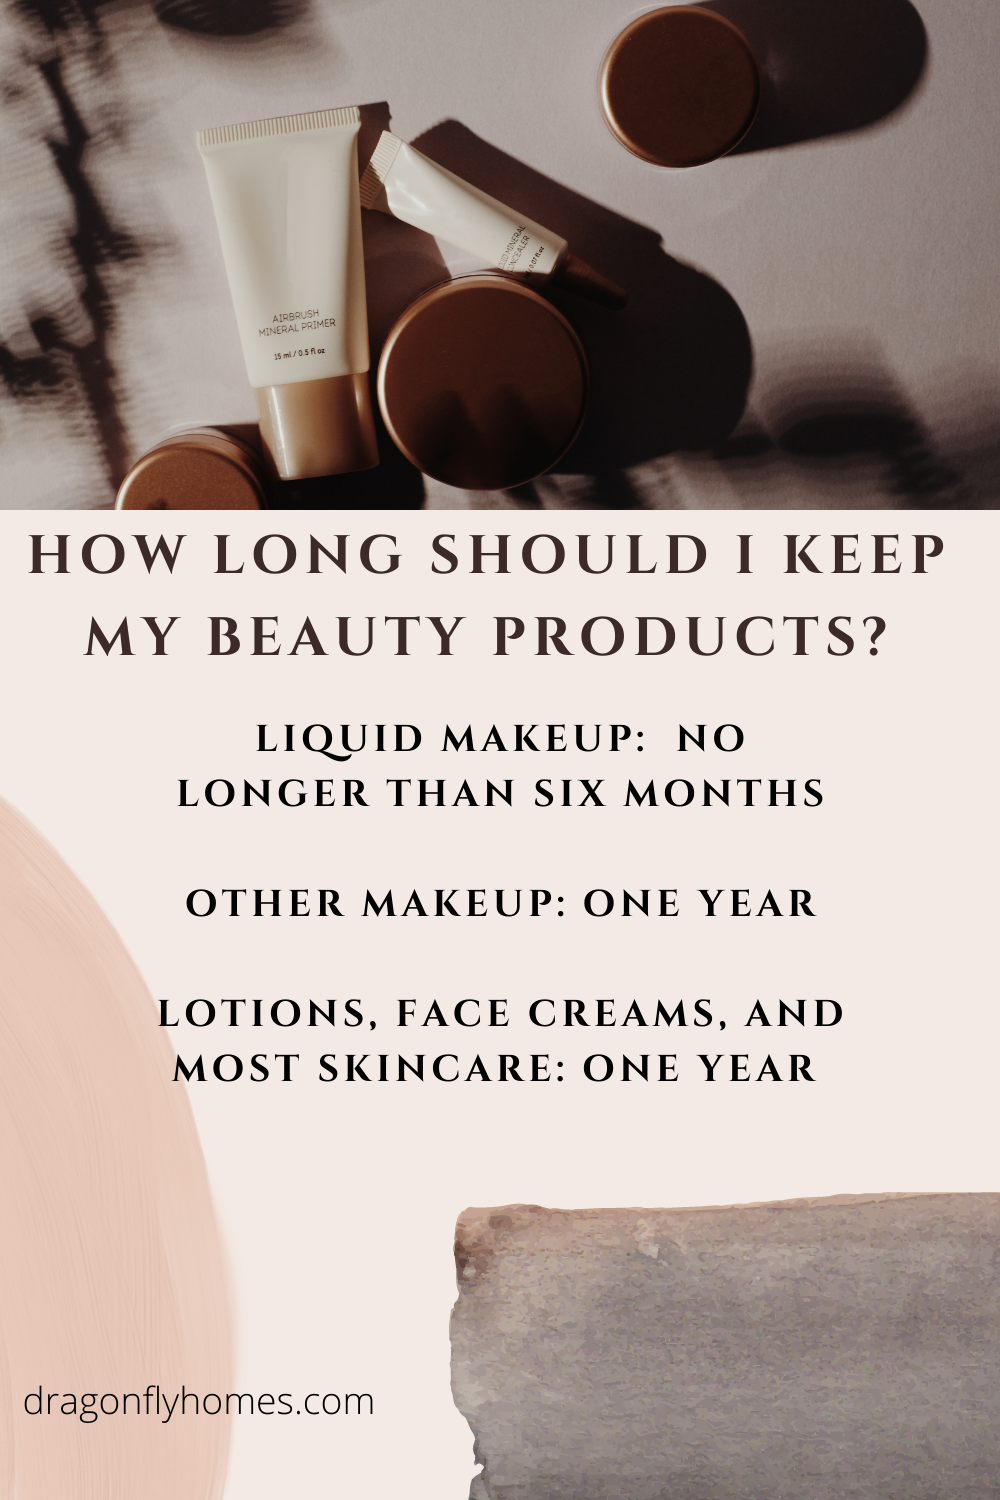 How Long Should I Keep My Beauty Products?